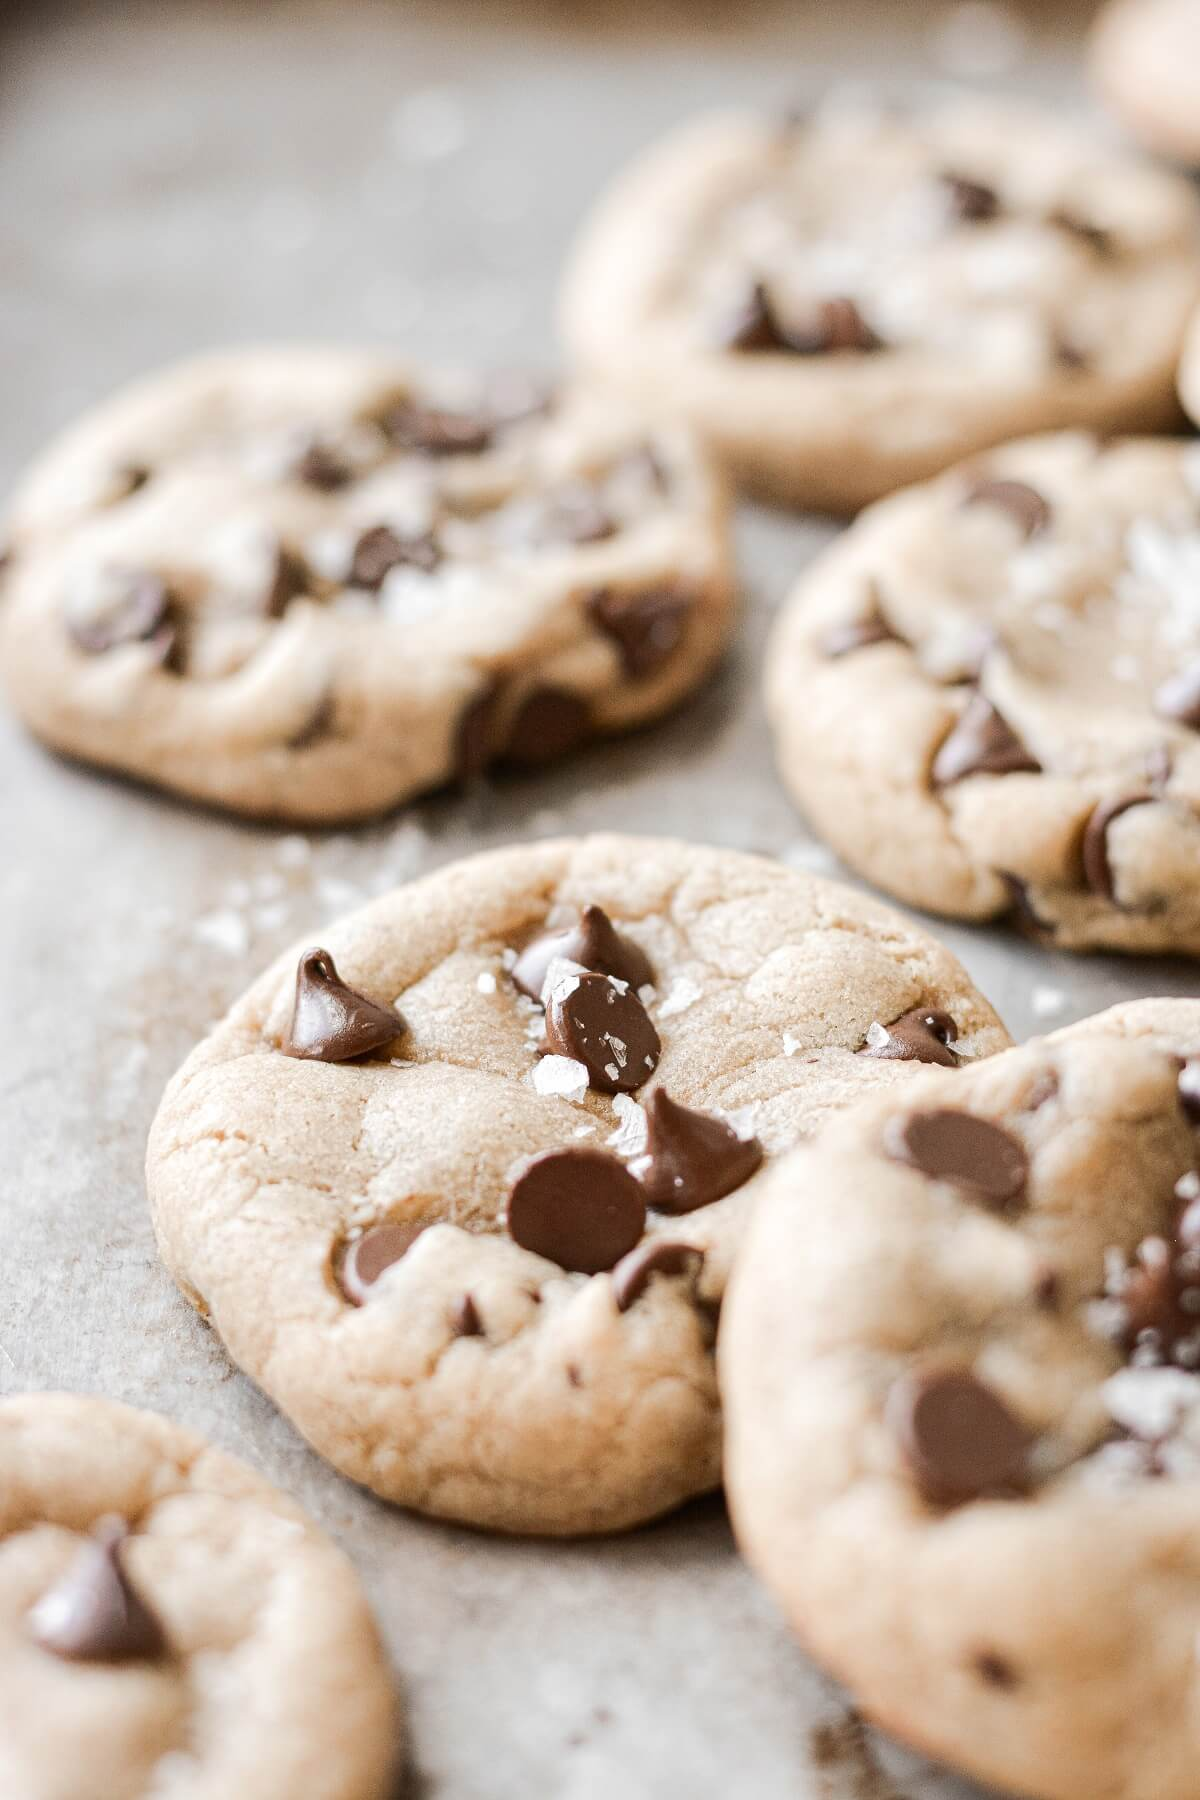 Caramel stuffed chocolate chip cookies sprinkled with flaky salt on a baking sheet.